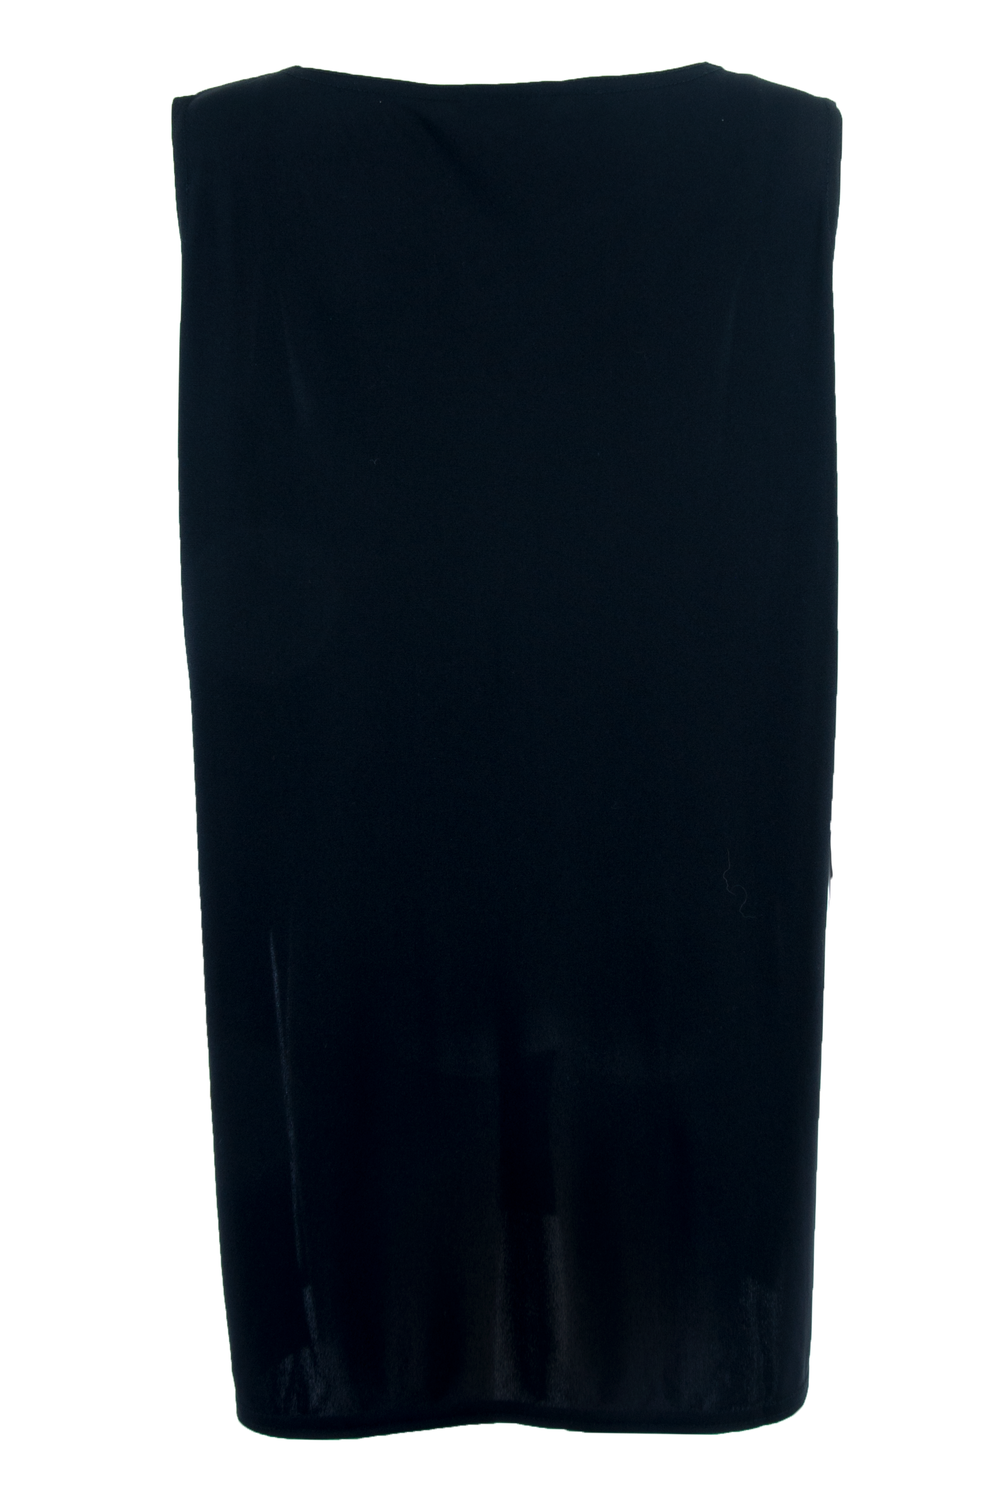 Back view of American made vintage DVF sleeveless little black dress with dropped armholes and high-split hem at sides.